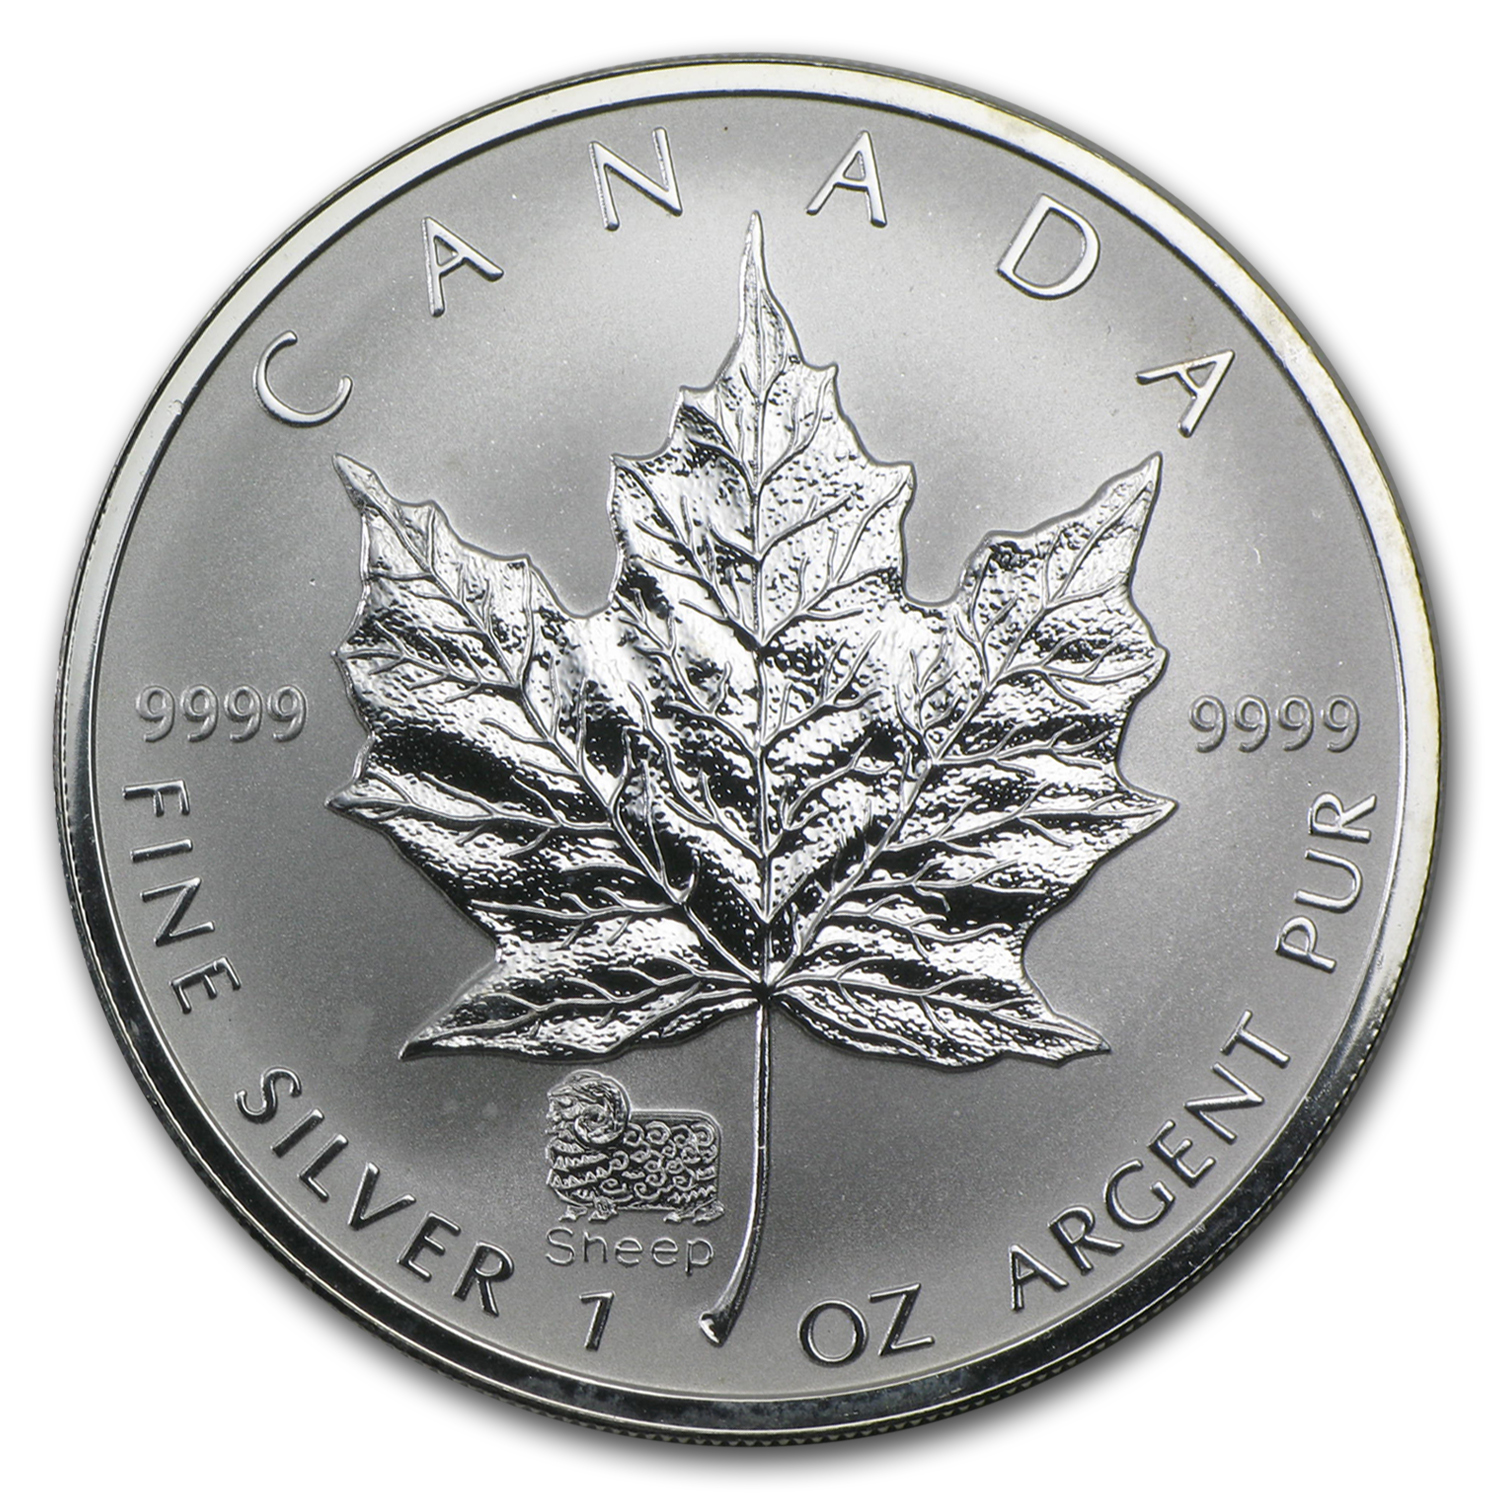 2003 Canada 1 oz Silver Maple Leaf Lunar Sheep Privy